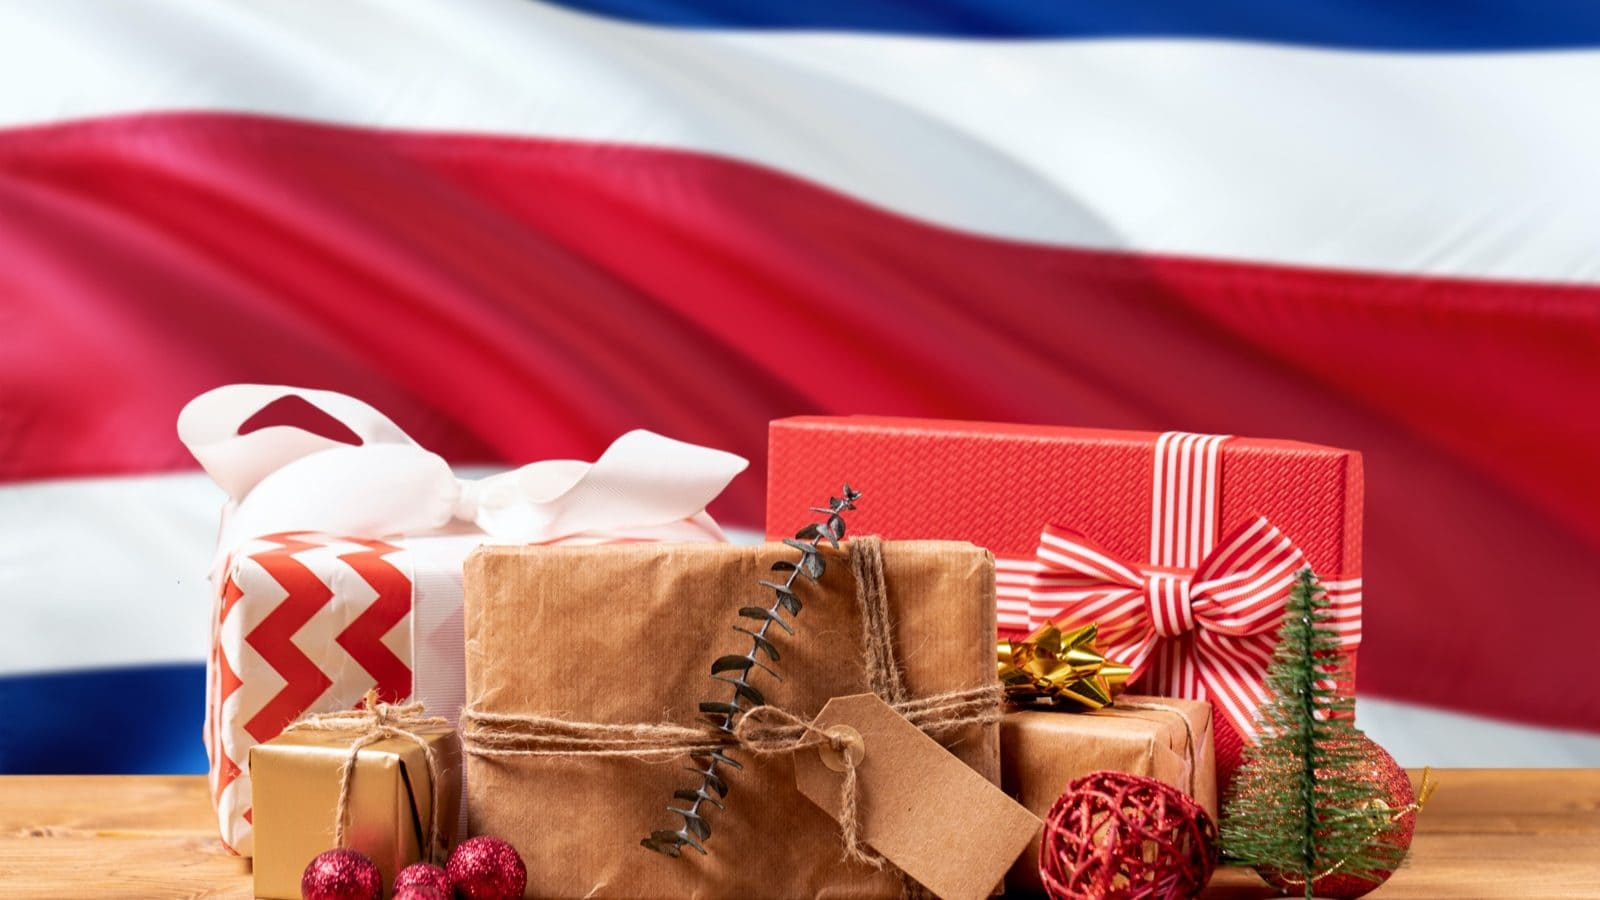 Christmas Traditions in Costa Rica - How Xmas is Celebrated